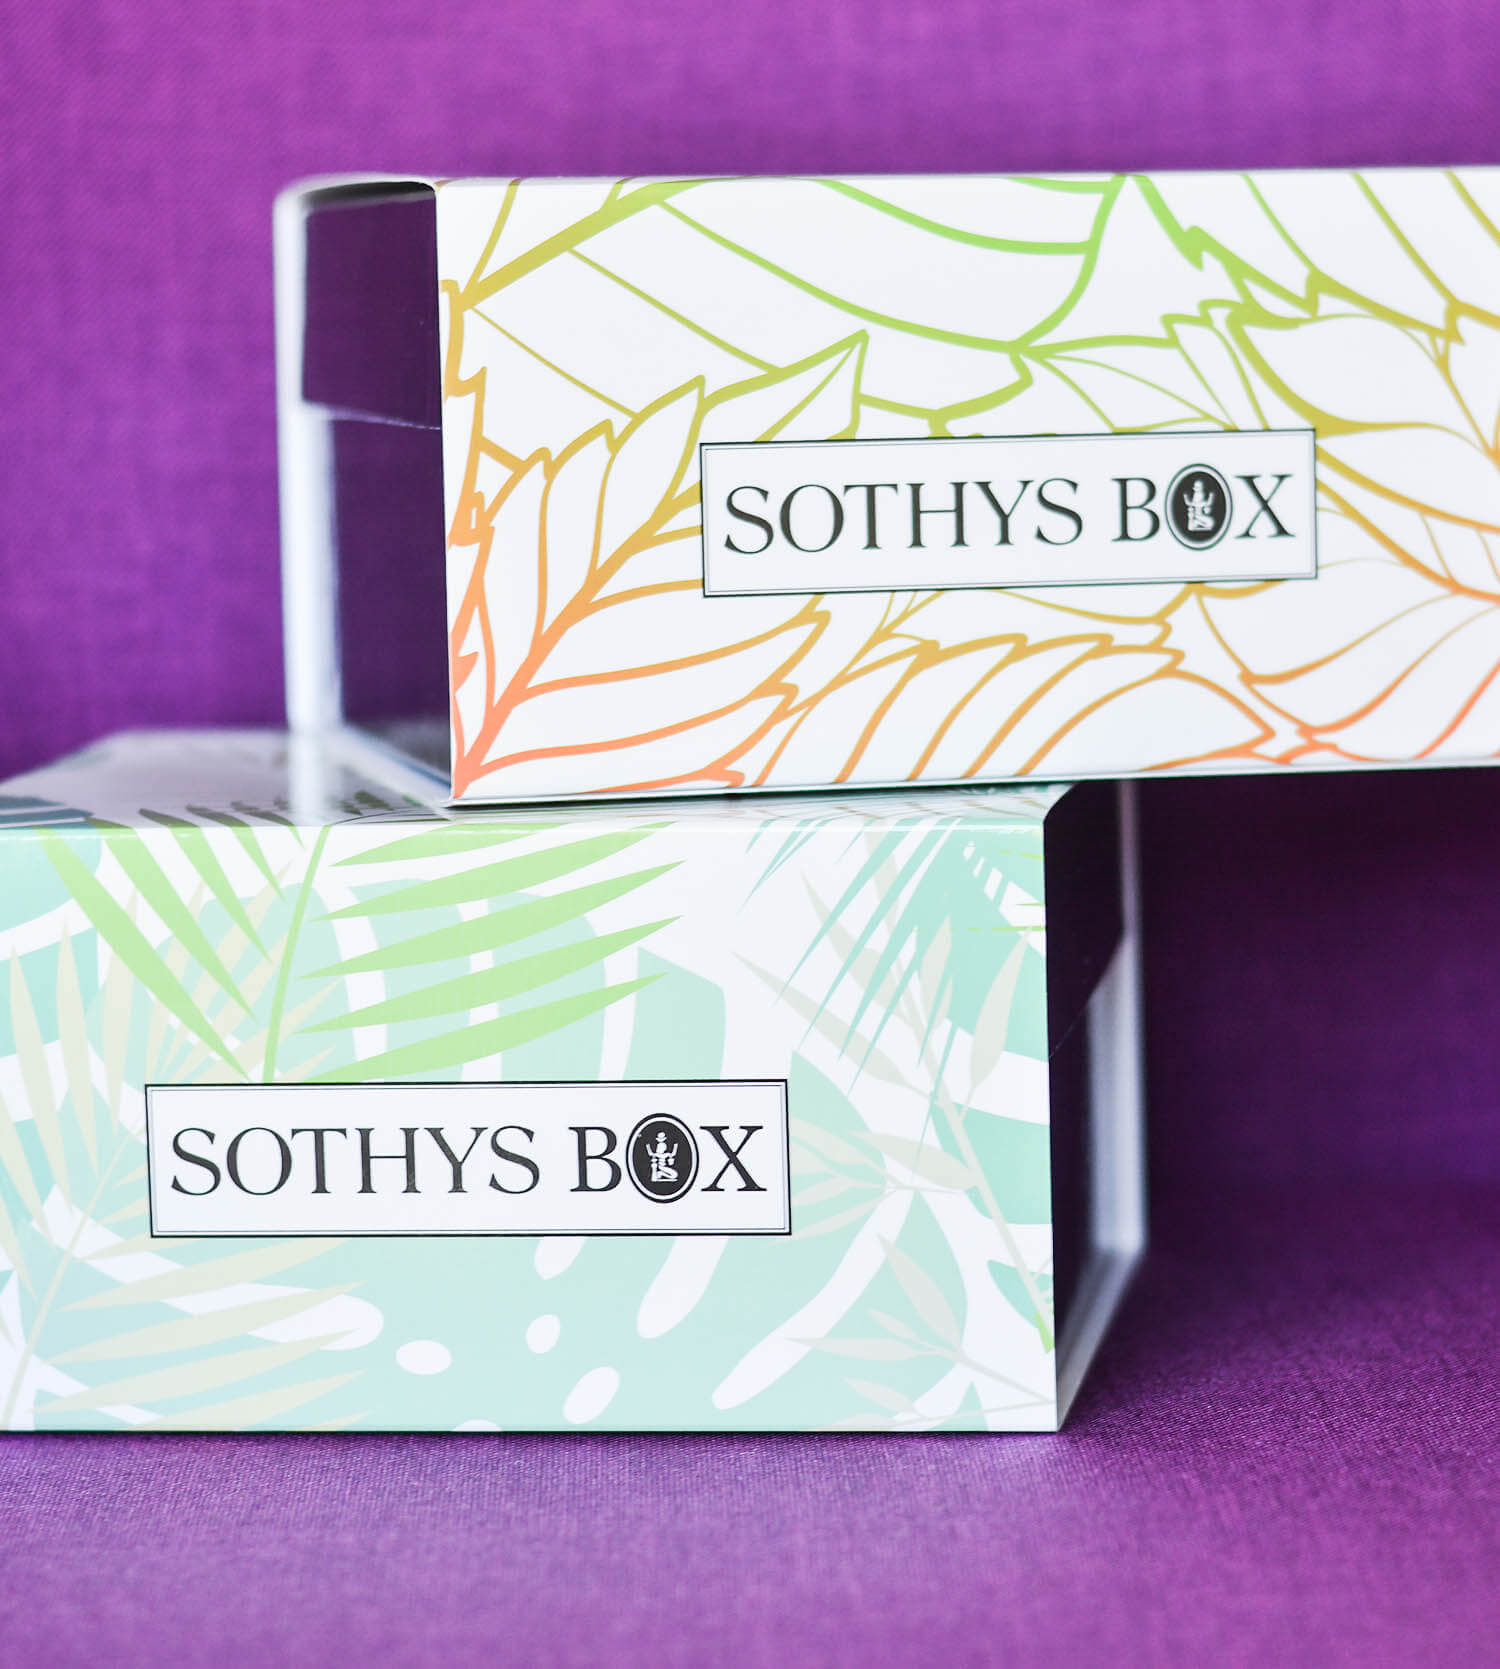 Kationette-Beautyblogger-Sothys-Box-Review-Lifestyle